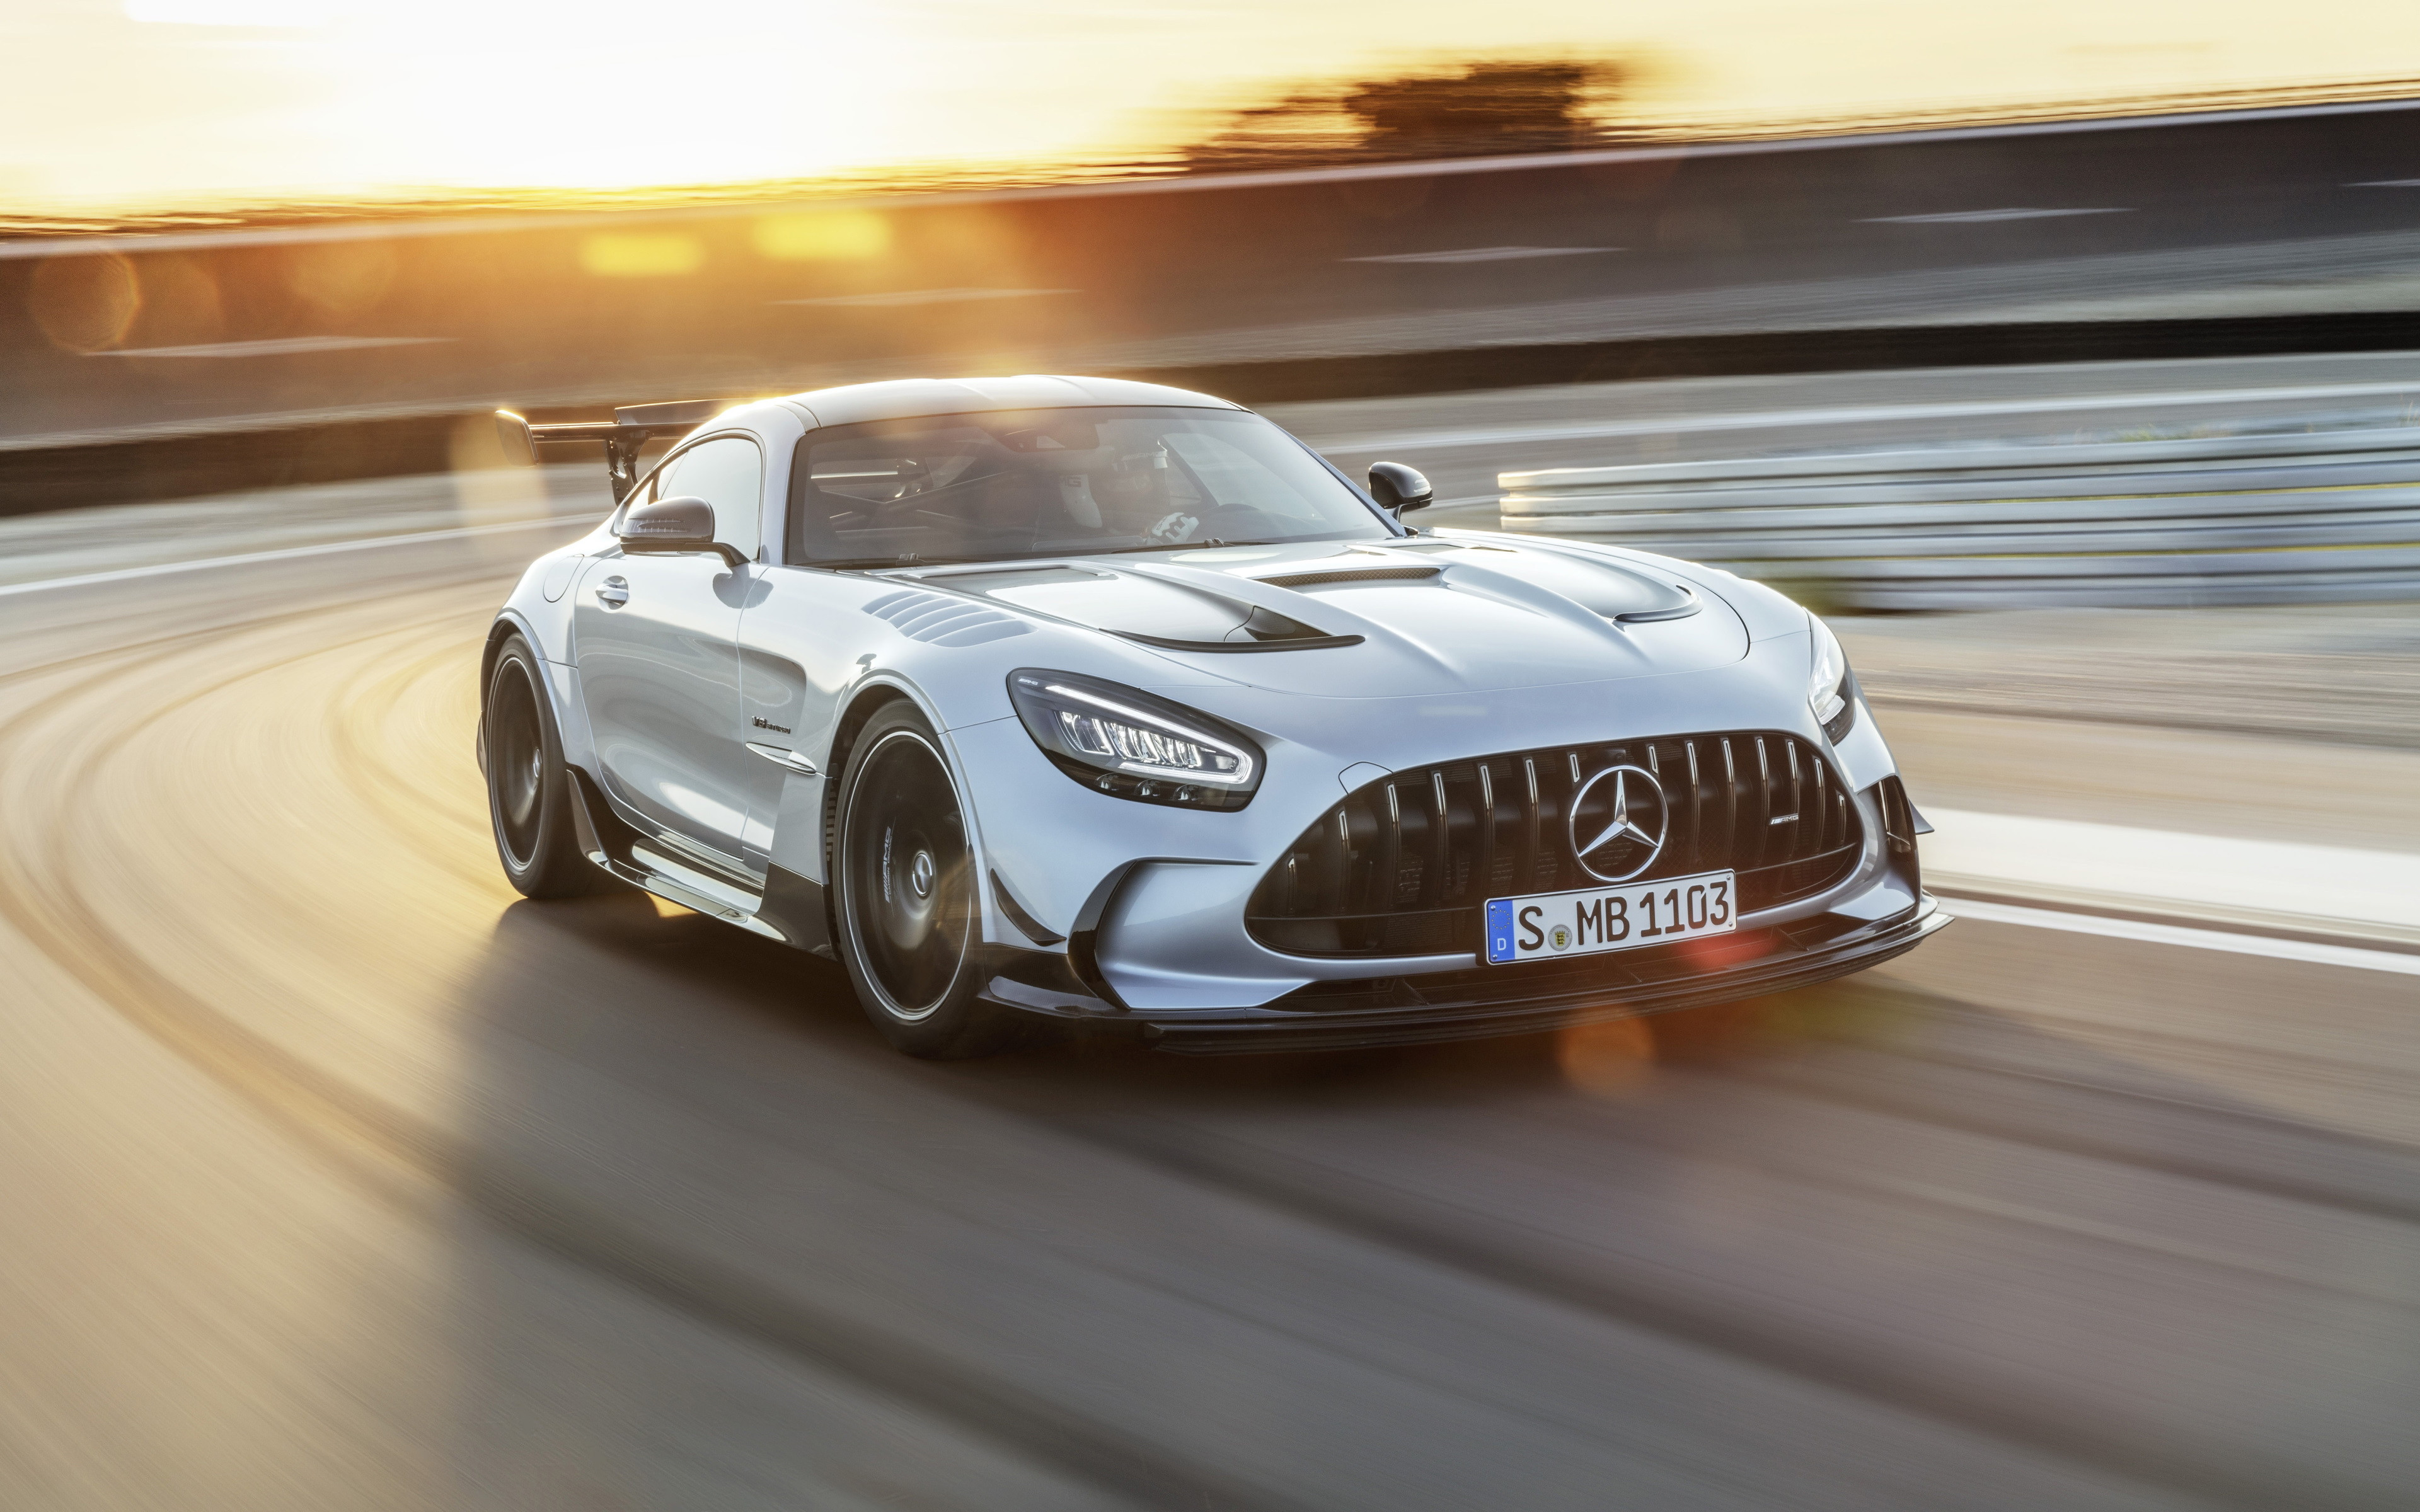 Mercedes AMG GT Black Series 2020 wallpaper 3840x2400